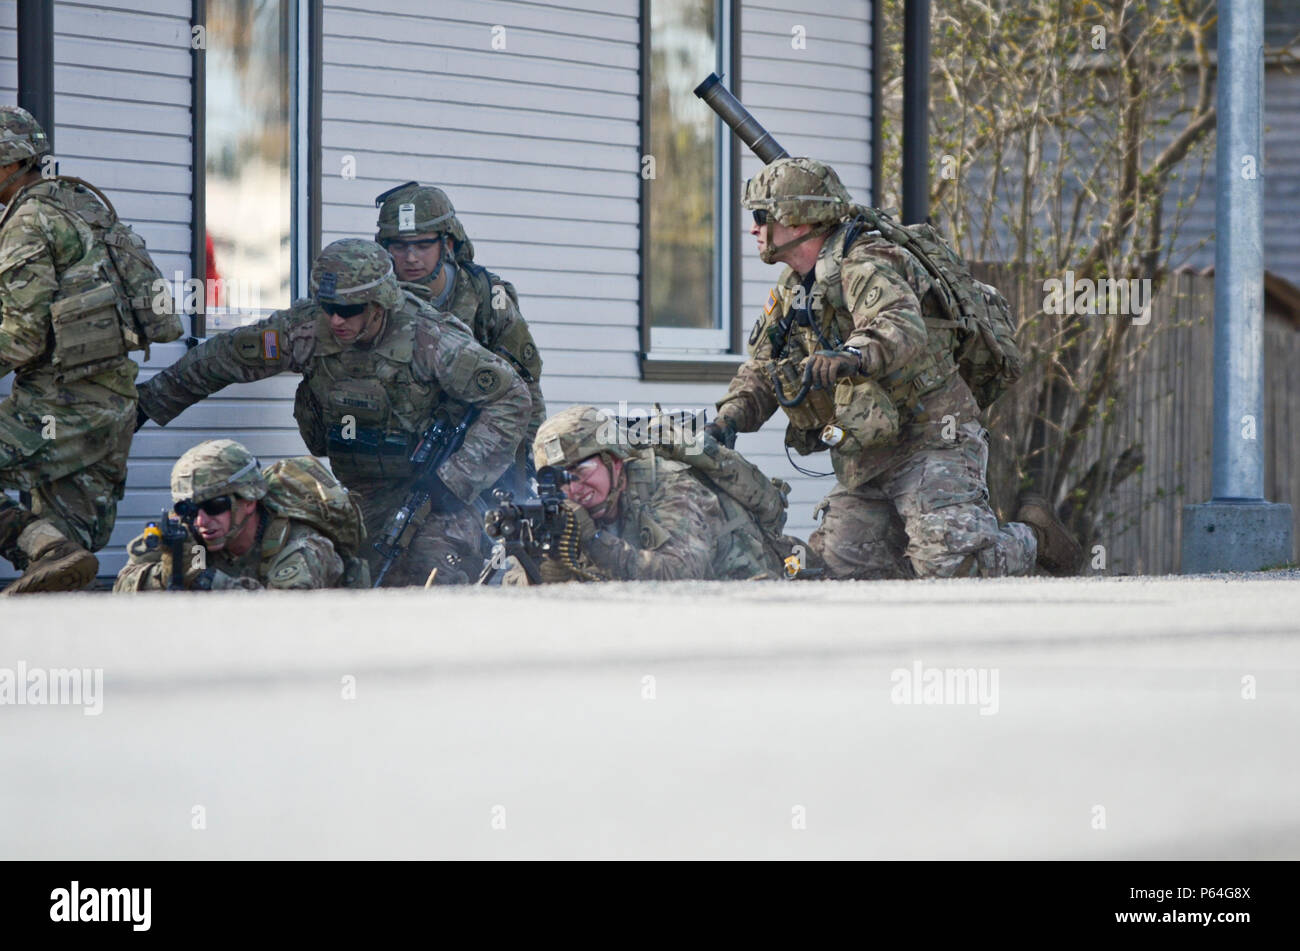 U.S. Soldiers of Eagle Troop, 2nd Squadron, 2nd Cavalry Regiment, stationed out of Vilseck, Germany, suppress enemy fire during an urban operations exercise in Voru, Estonia, April 30, 2016. (Photo by U.S. Army Staff Sgt. Steven M. Colvin/Released) - Stock Image